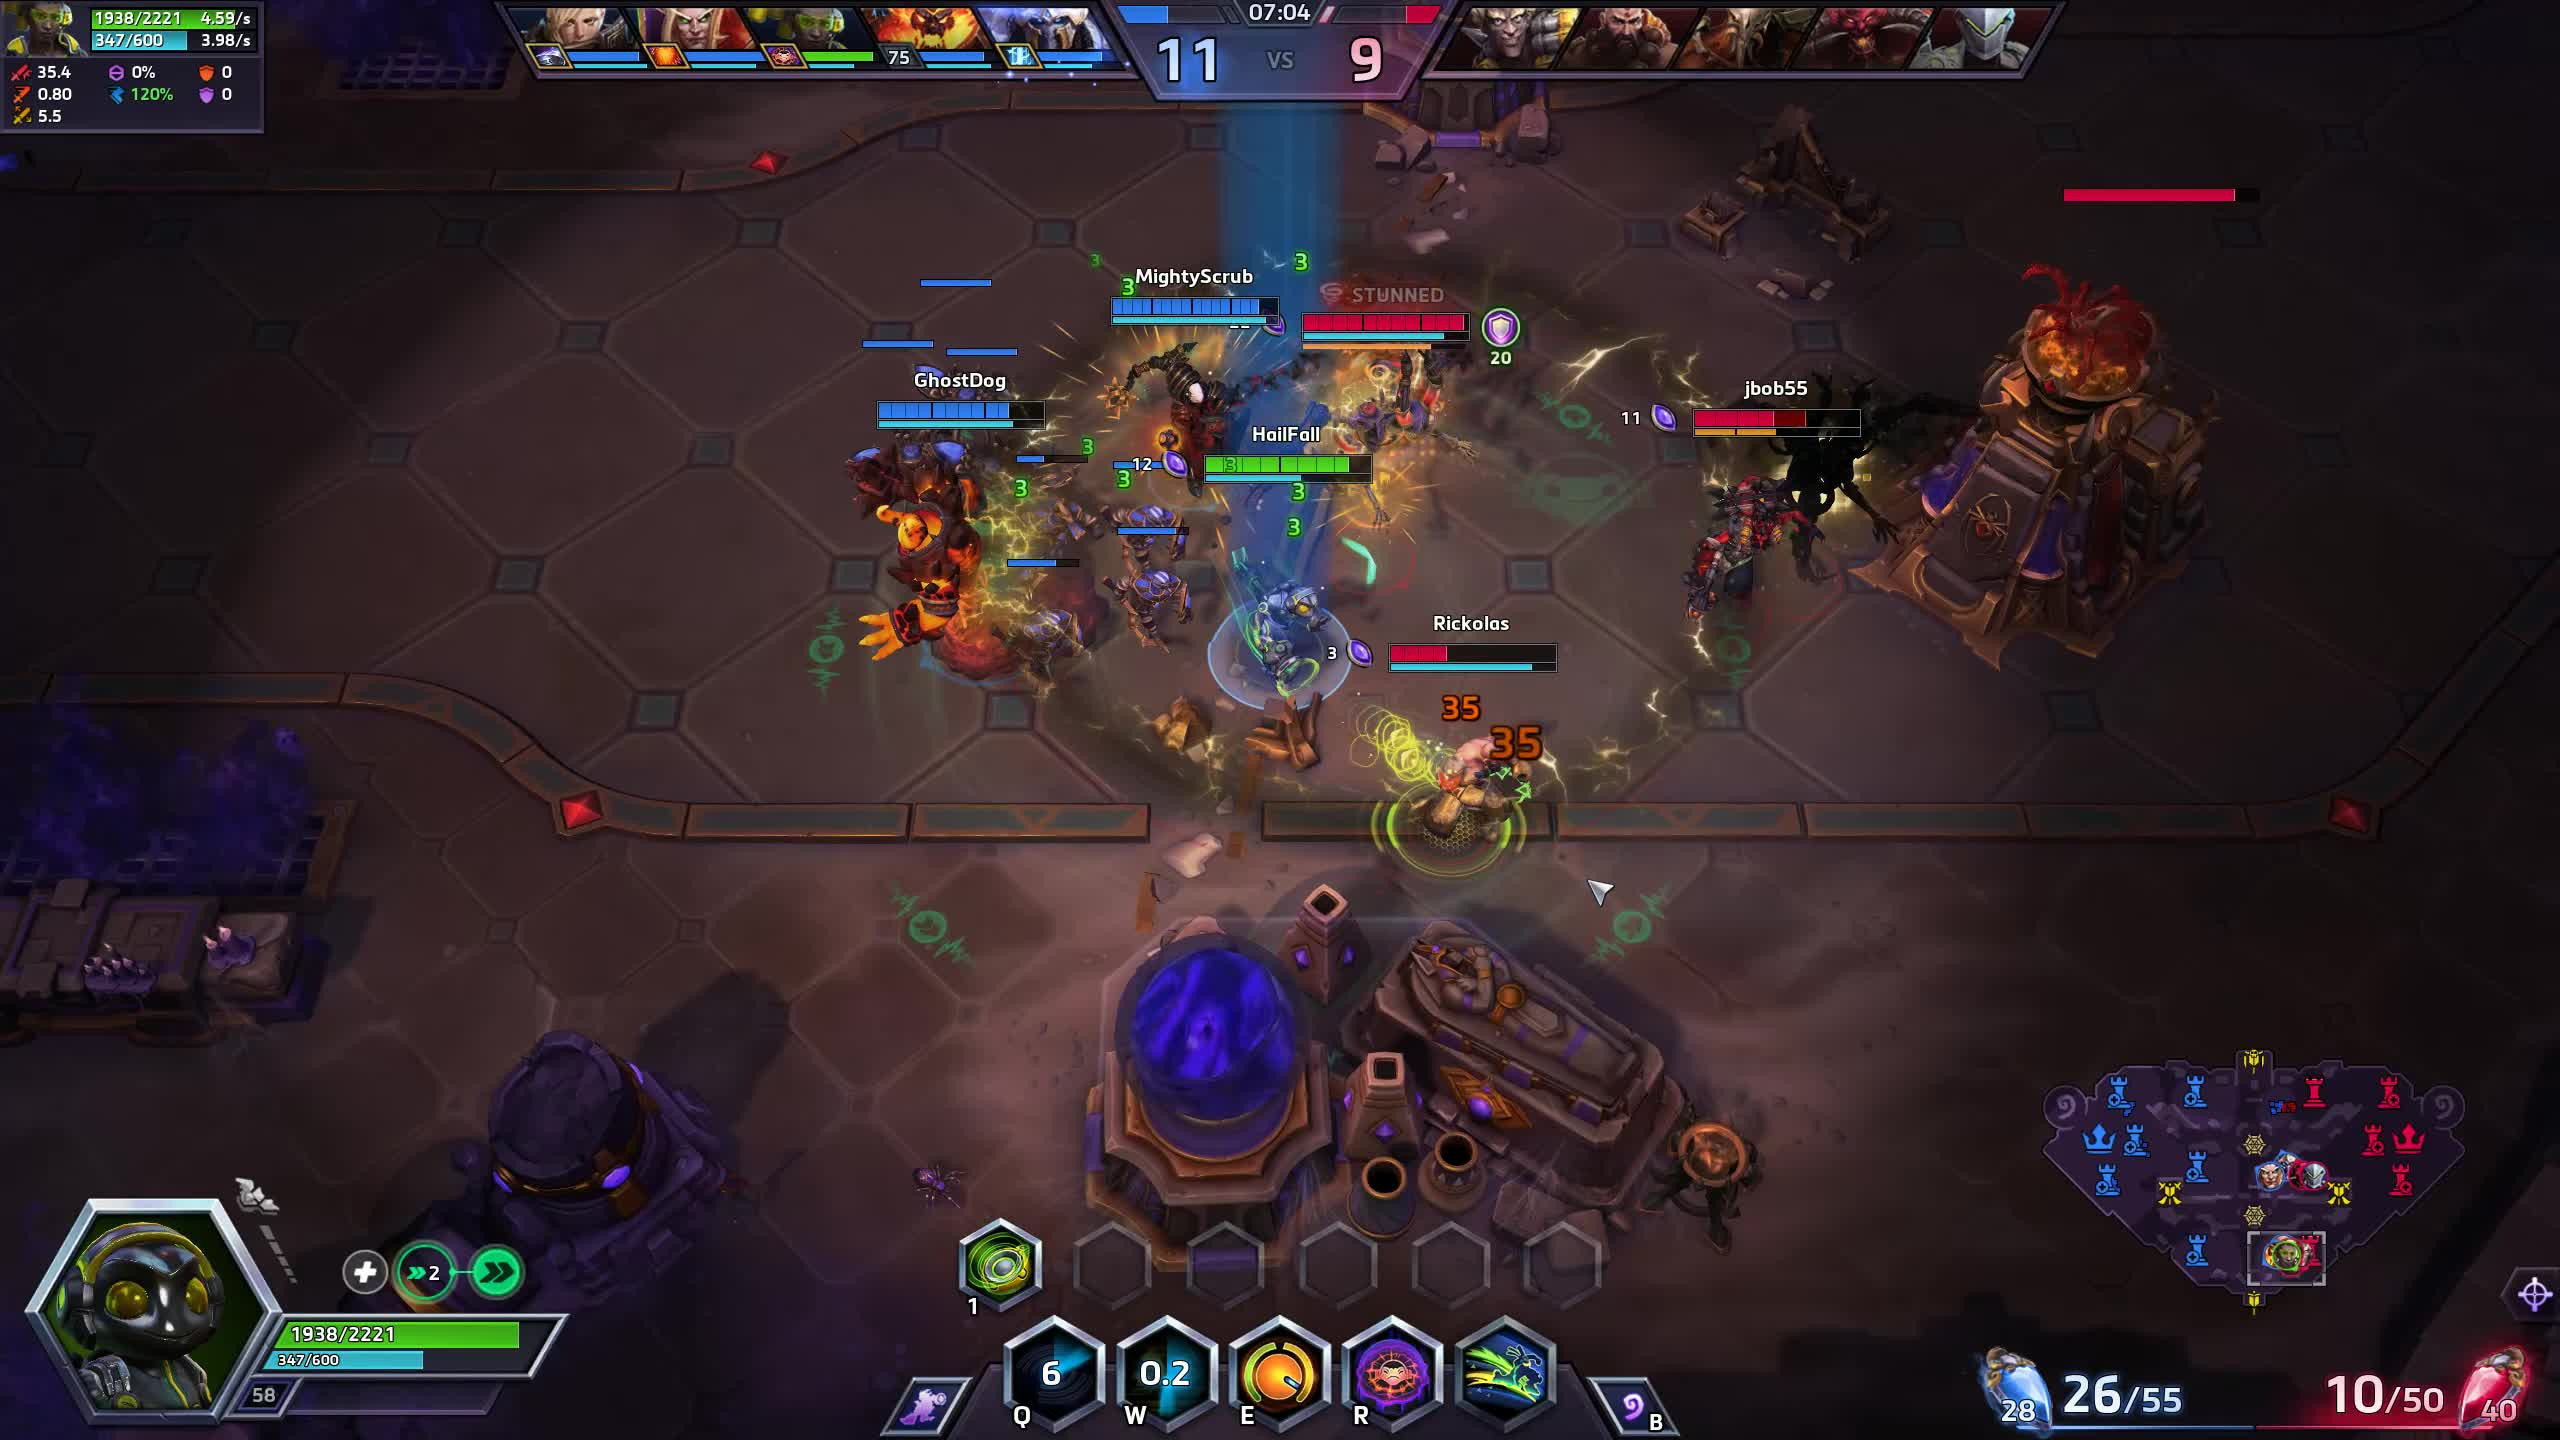 heroesofthestorm, Heroes of the Storm 2019.03.14 - 21.01.19.05.DVR GIFs